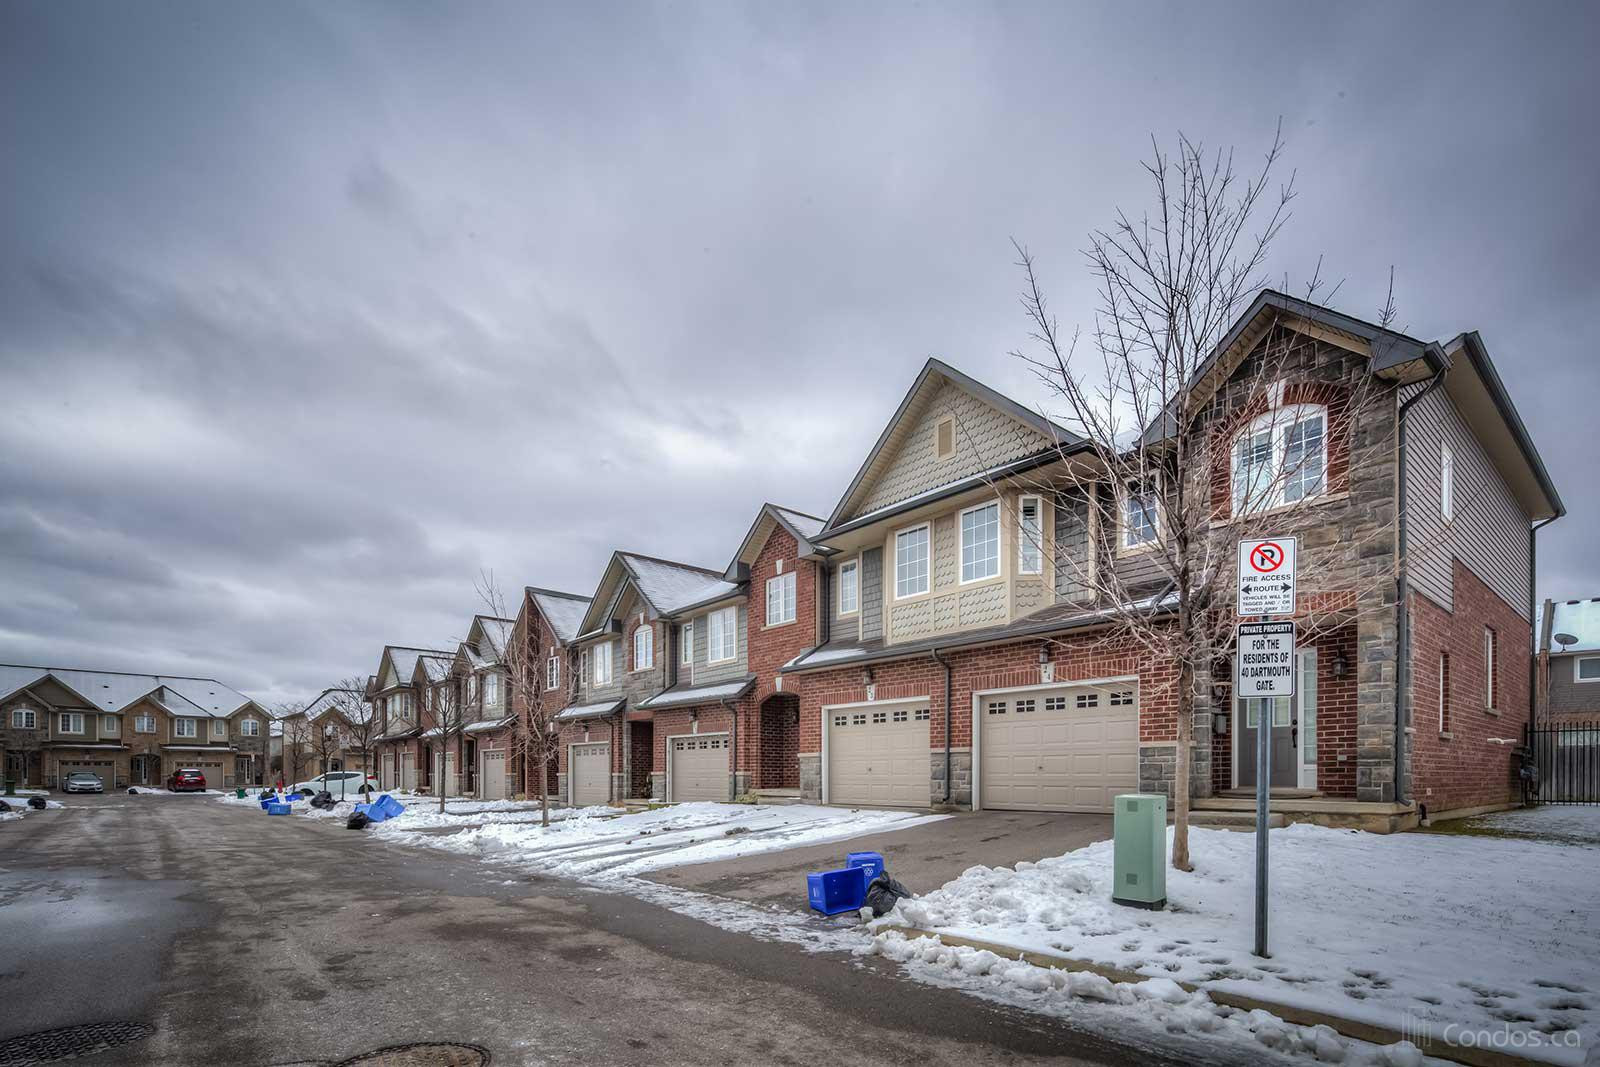 40 Darthmouth Condos at 40 Dartmouth Gate, Stoney Creek 1